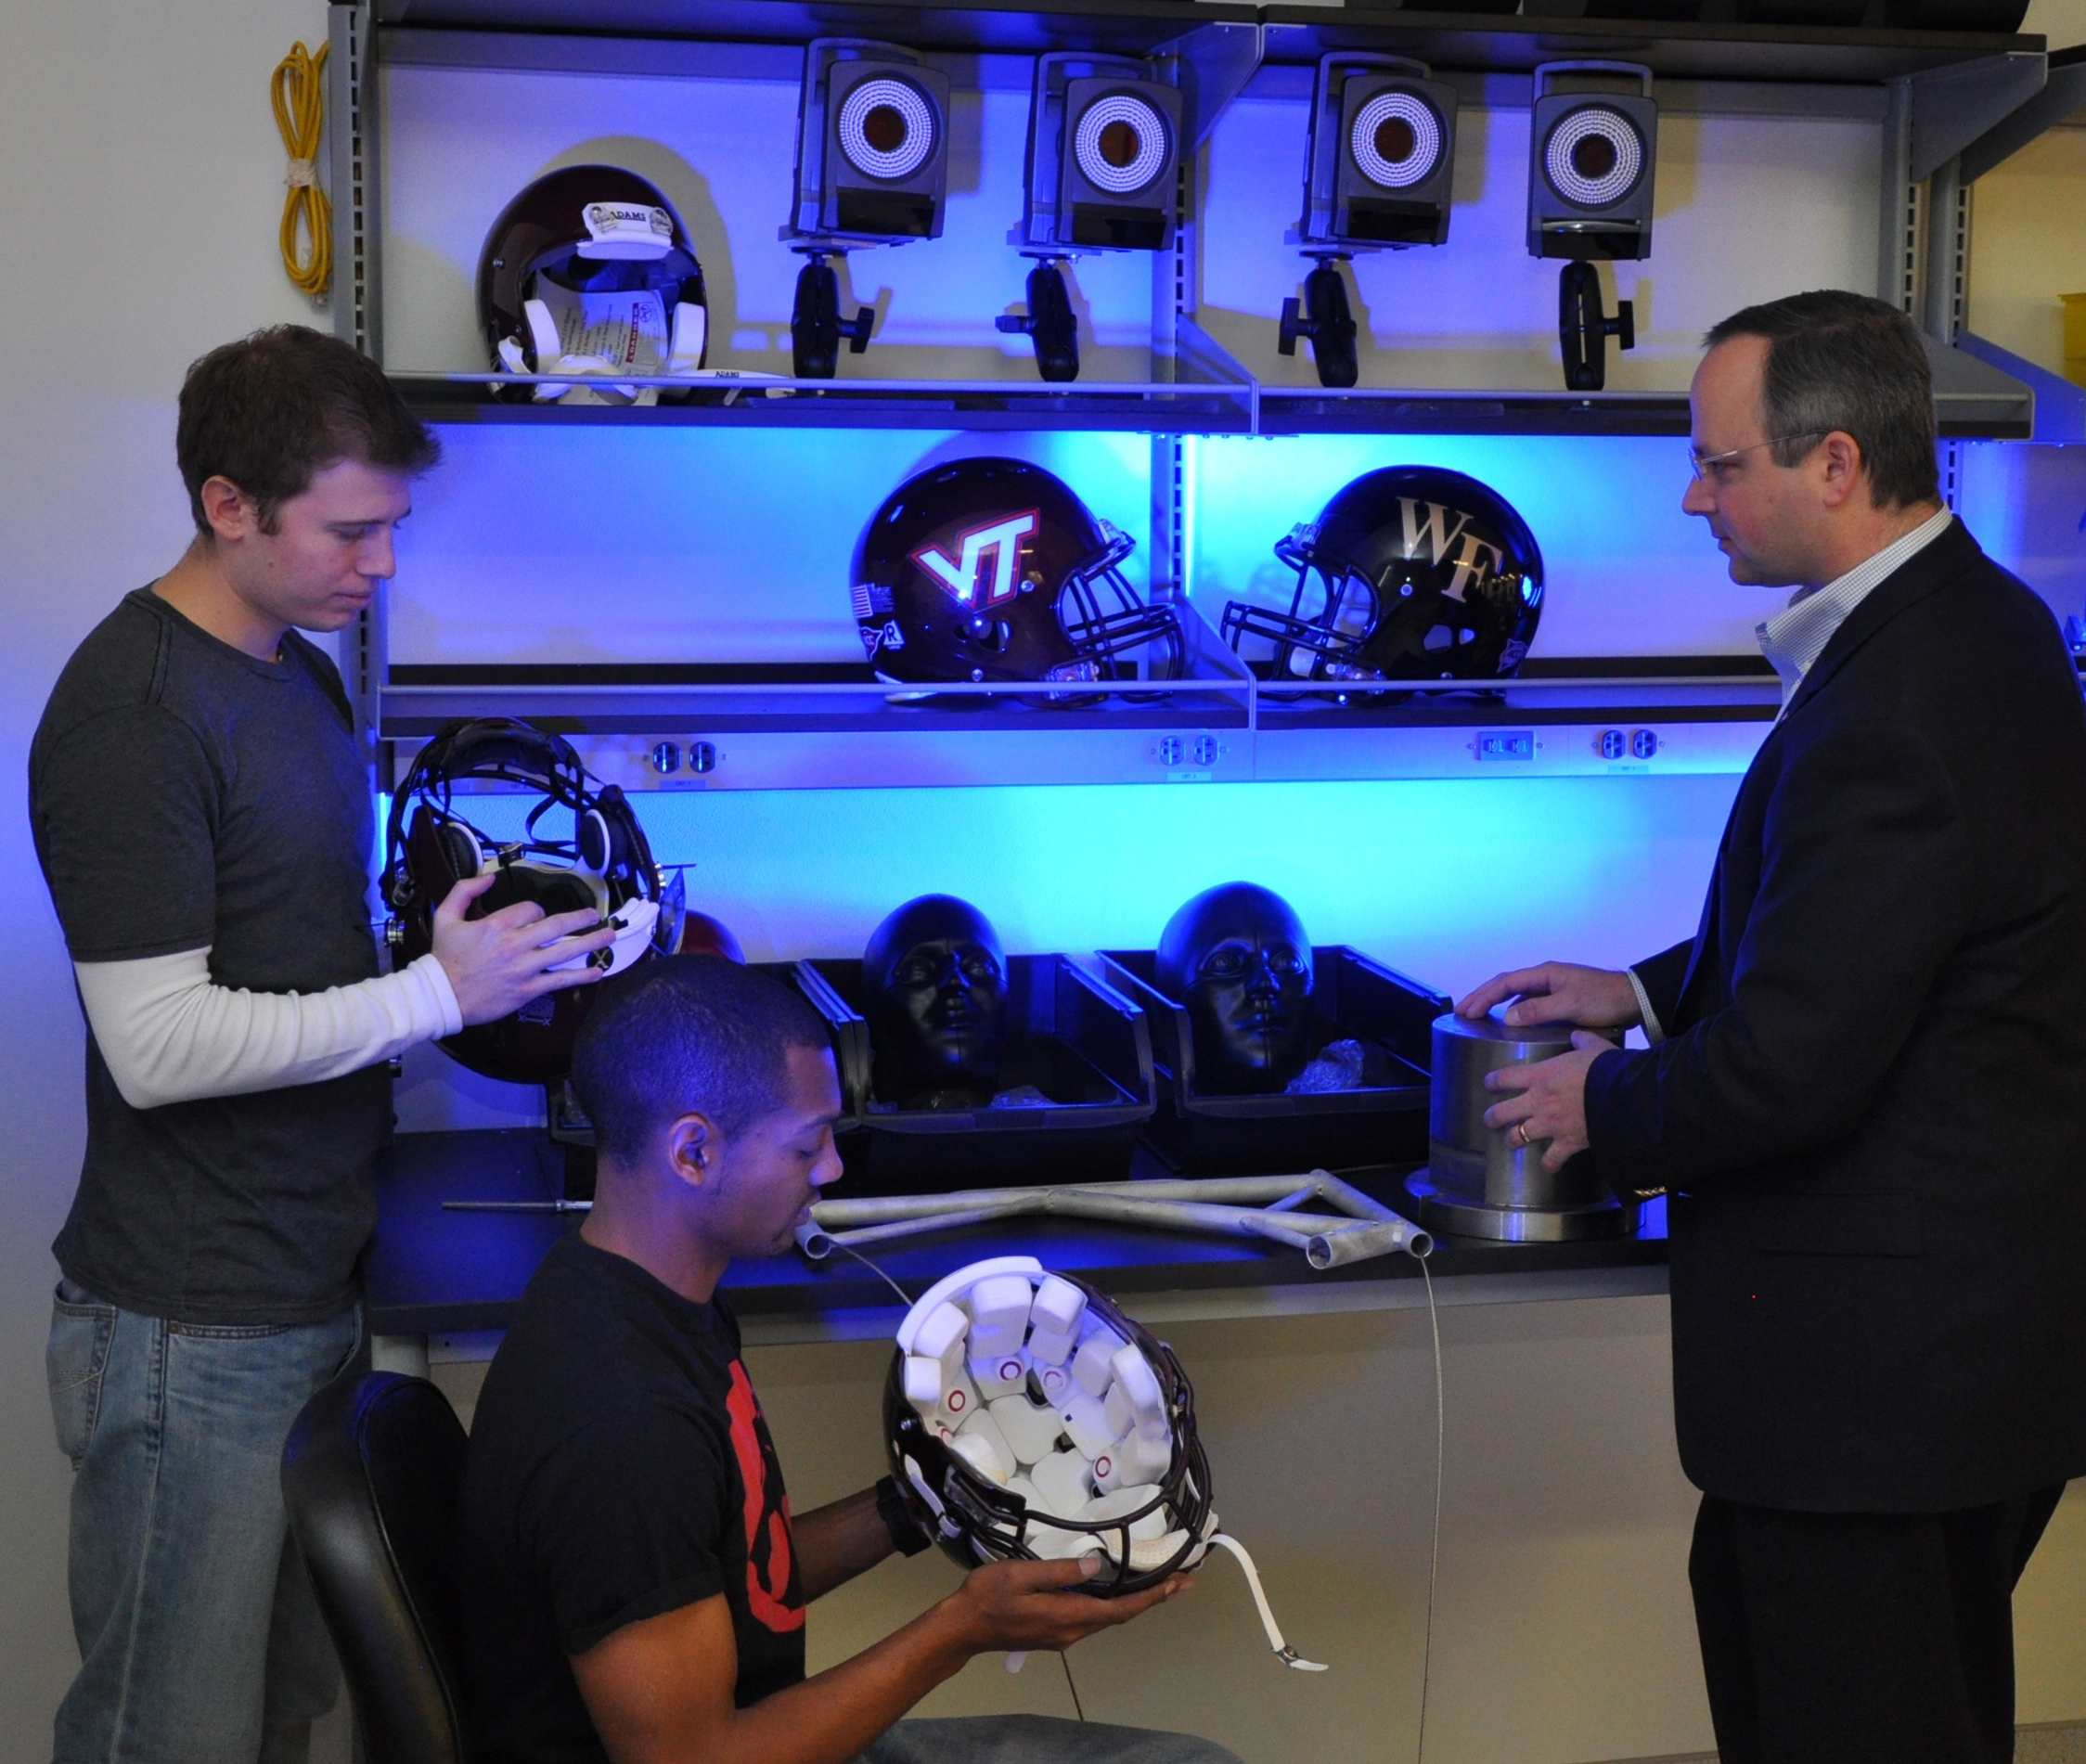 Two professors and a student examine football helmets.